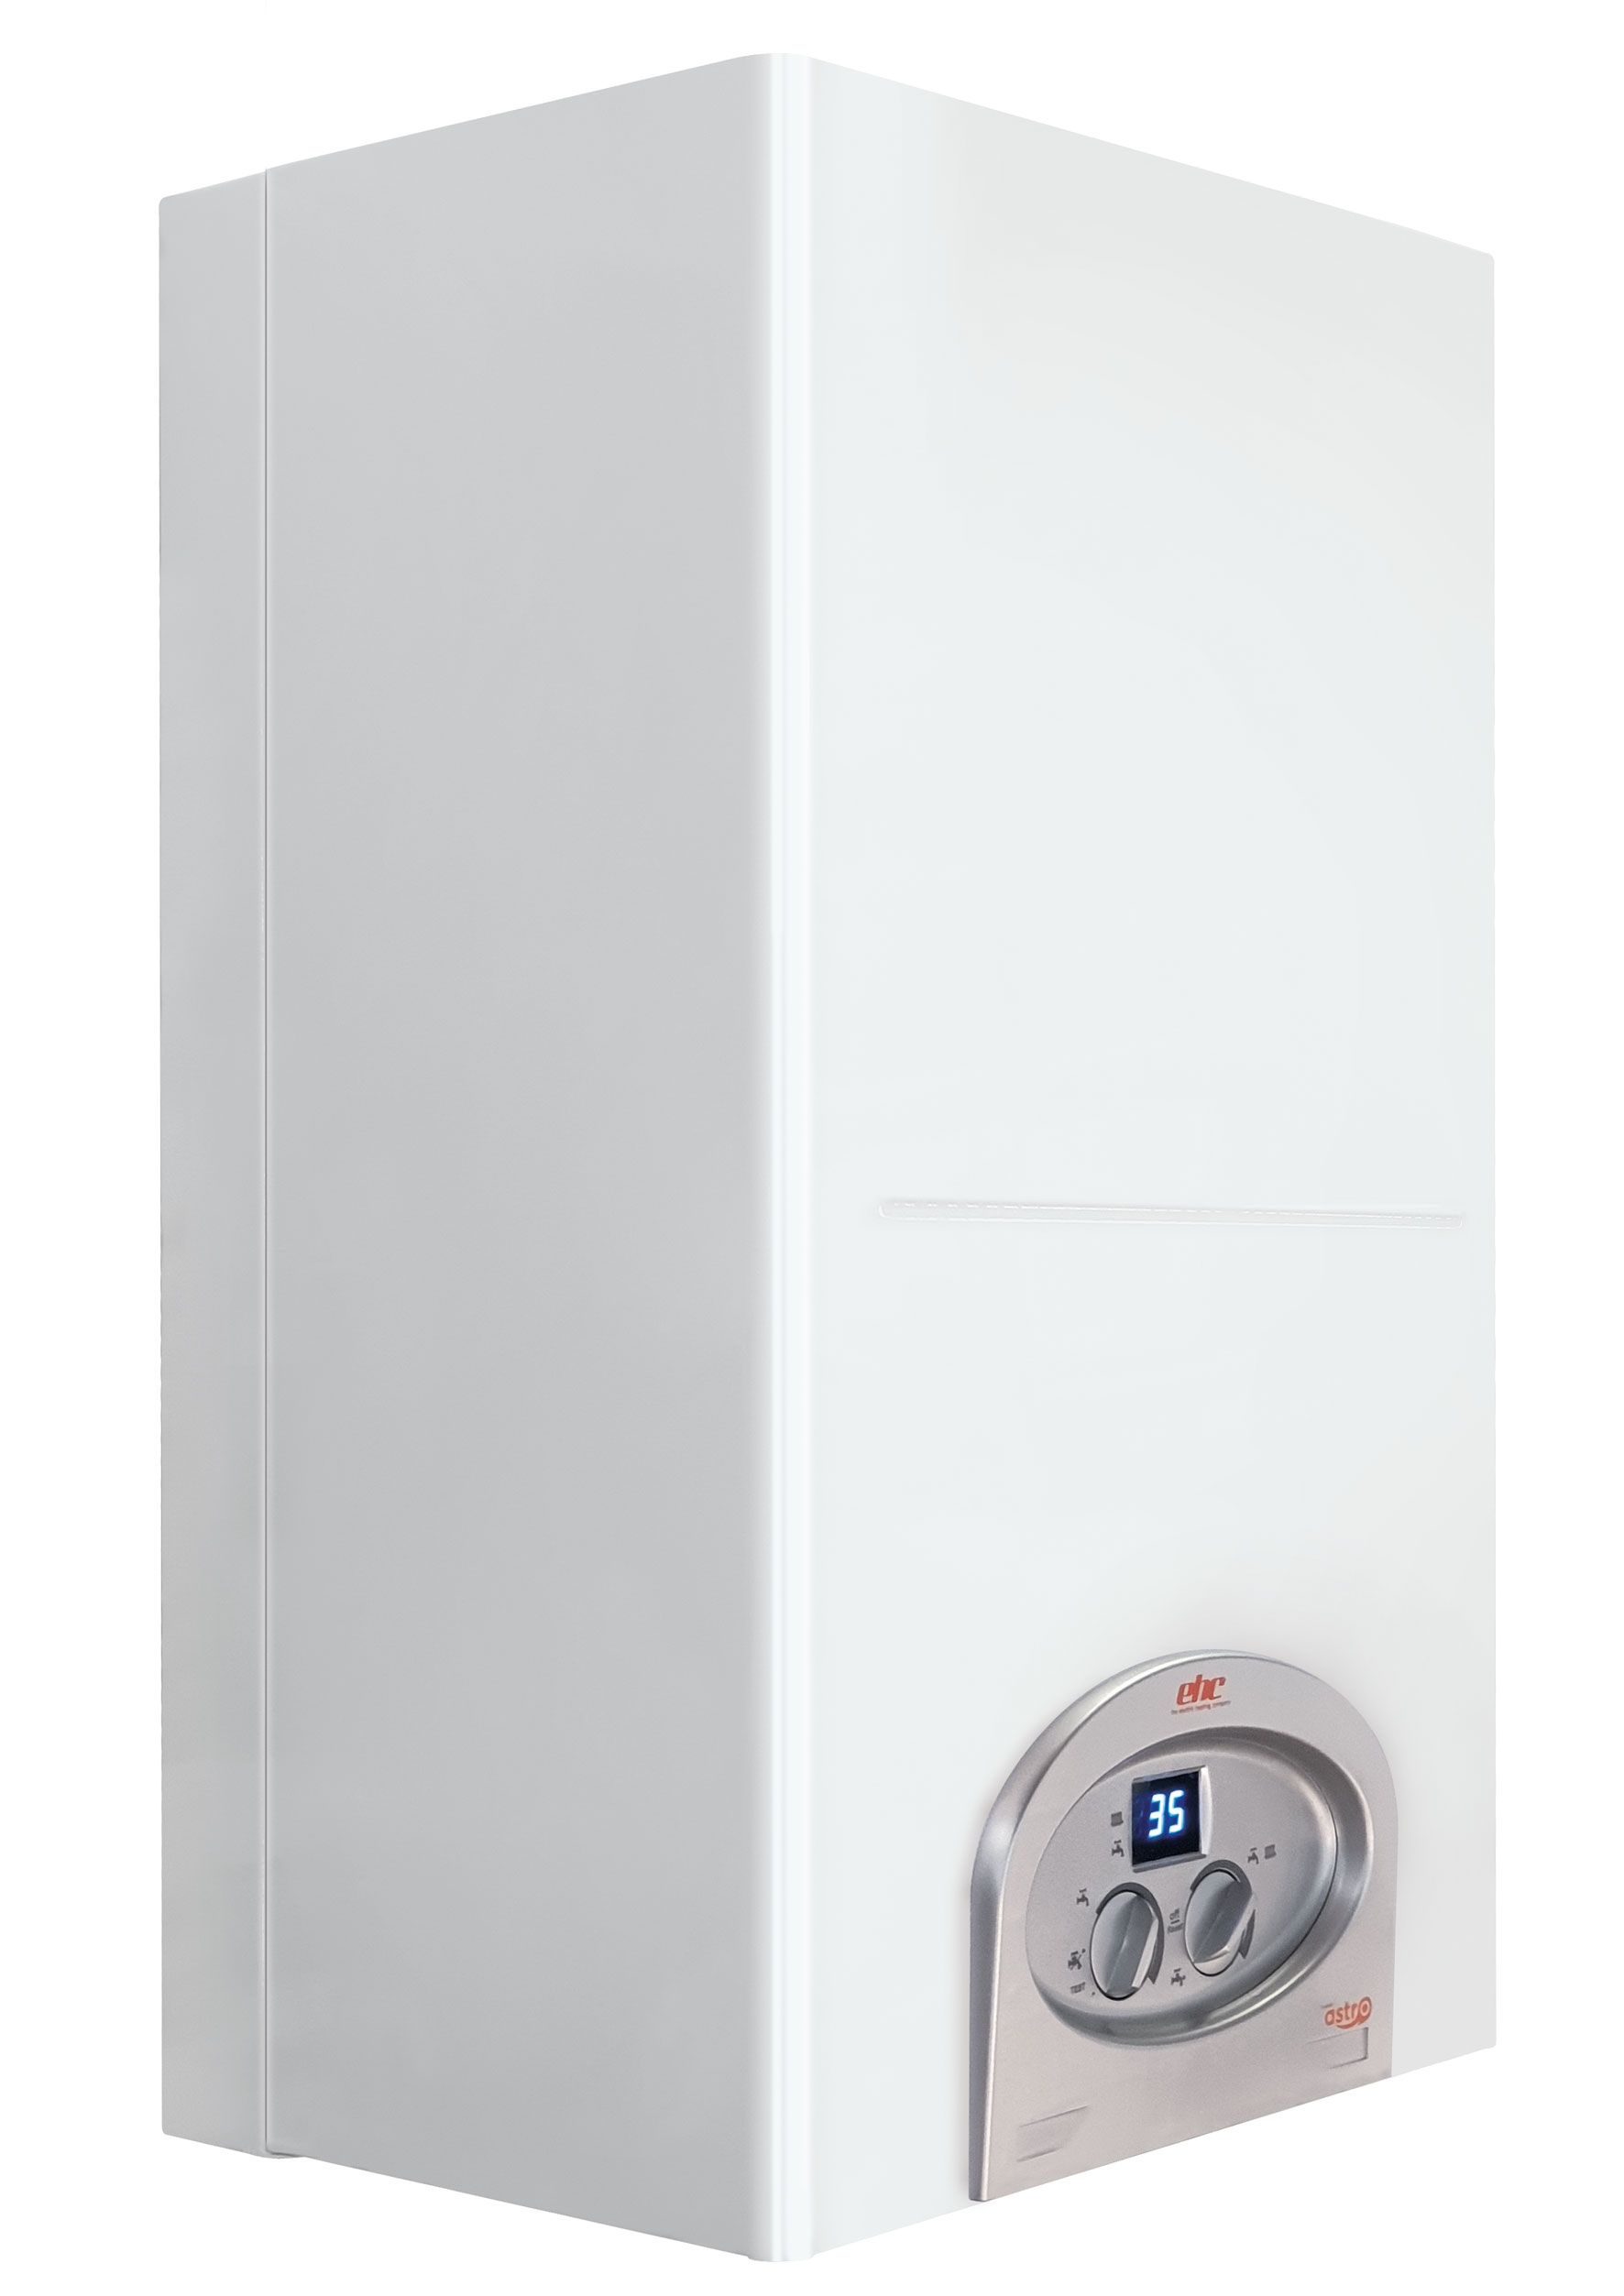 Plumbing Wise - EHC Electric Heating Company - Fusion Astro Combi boiler